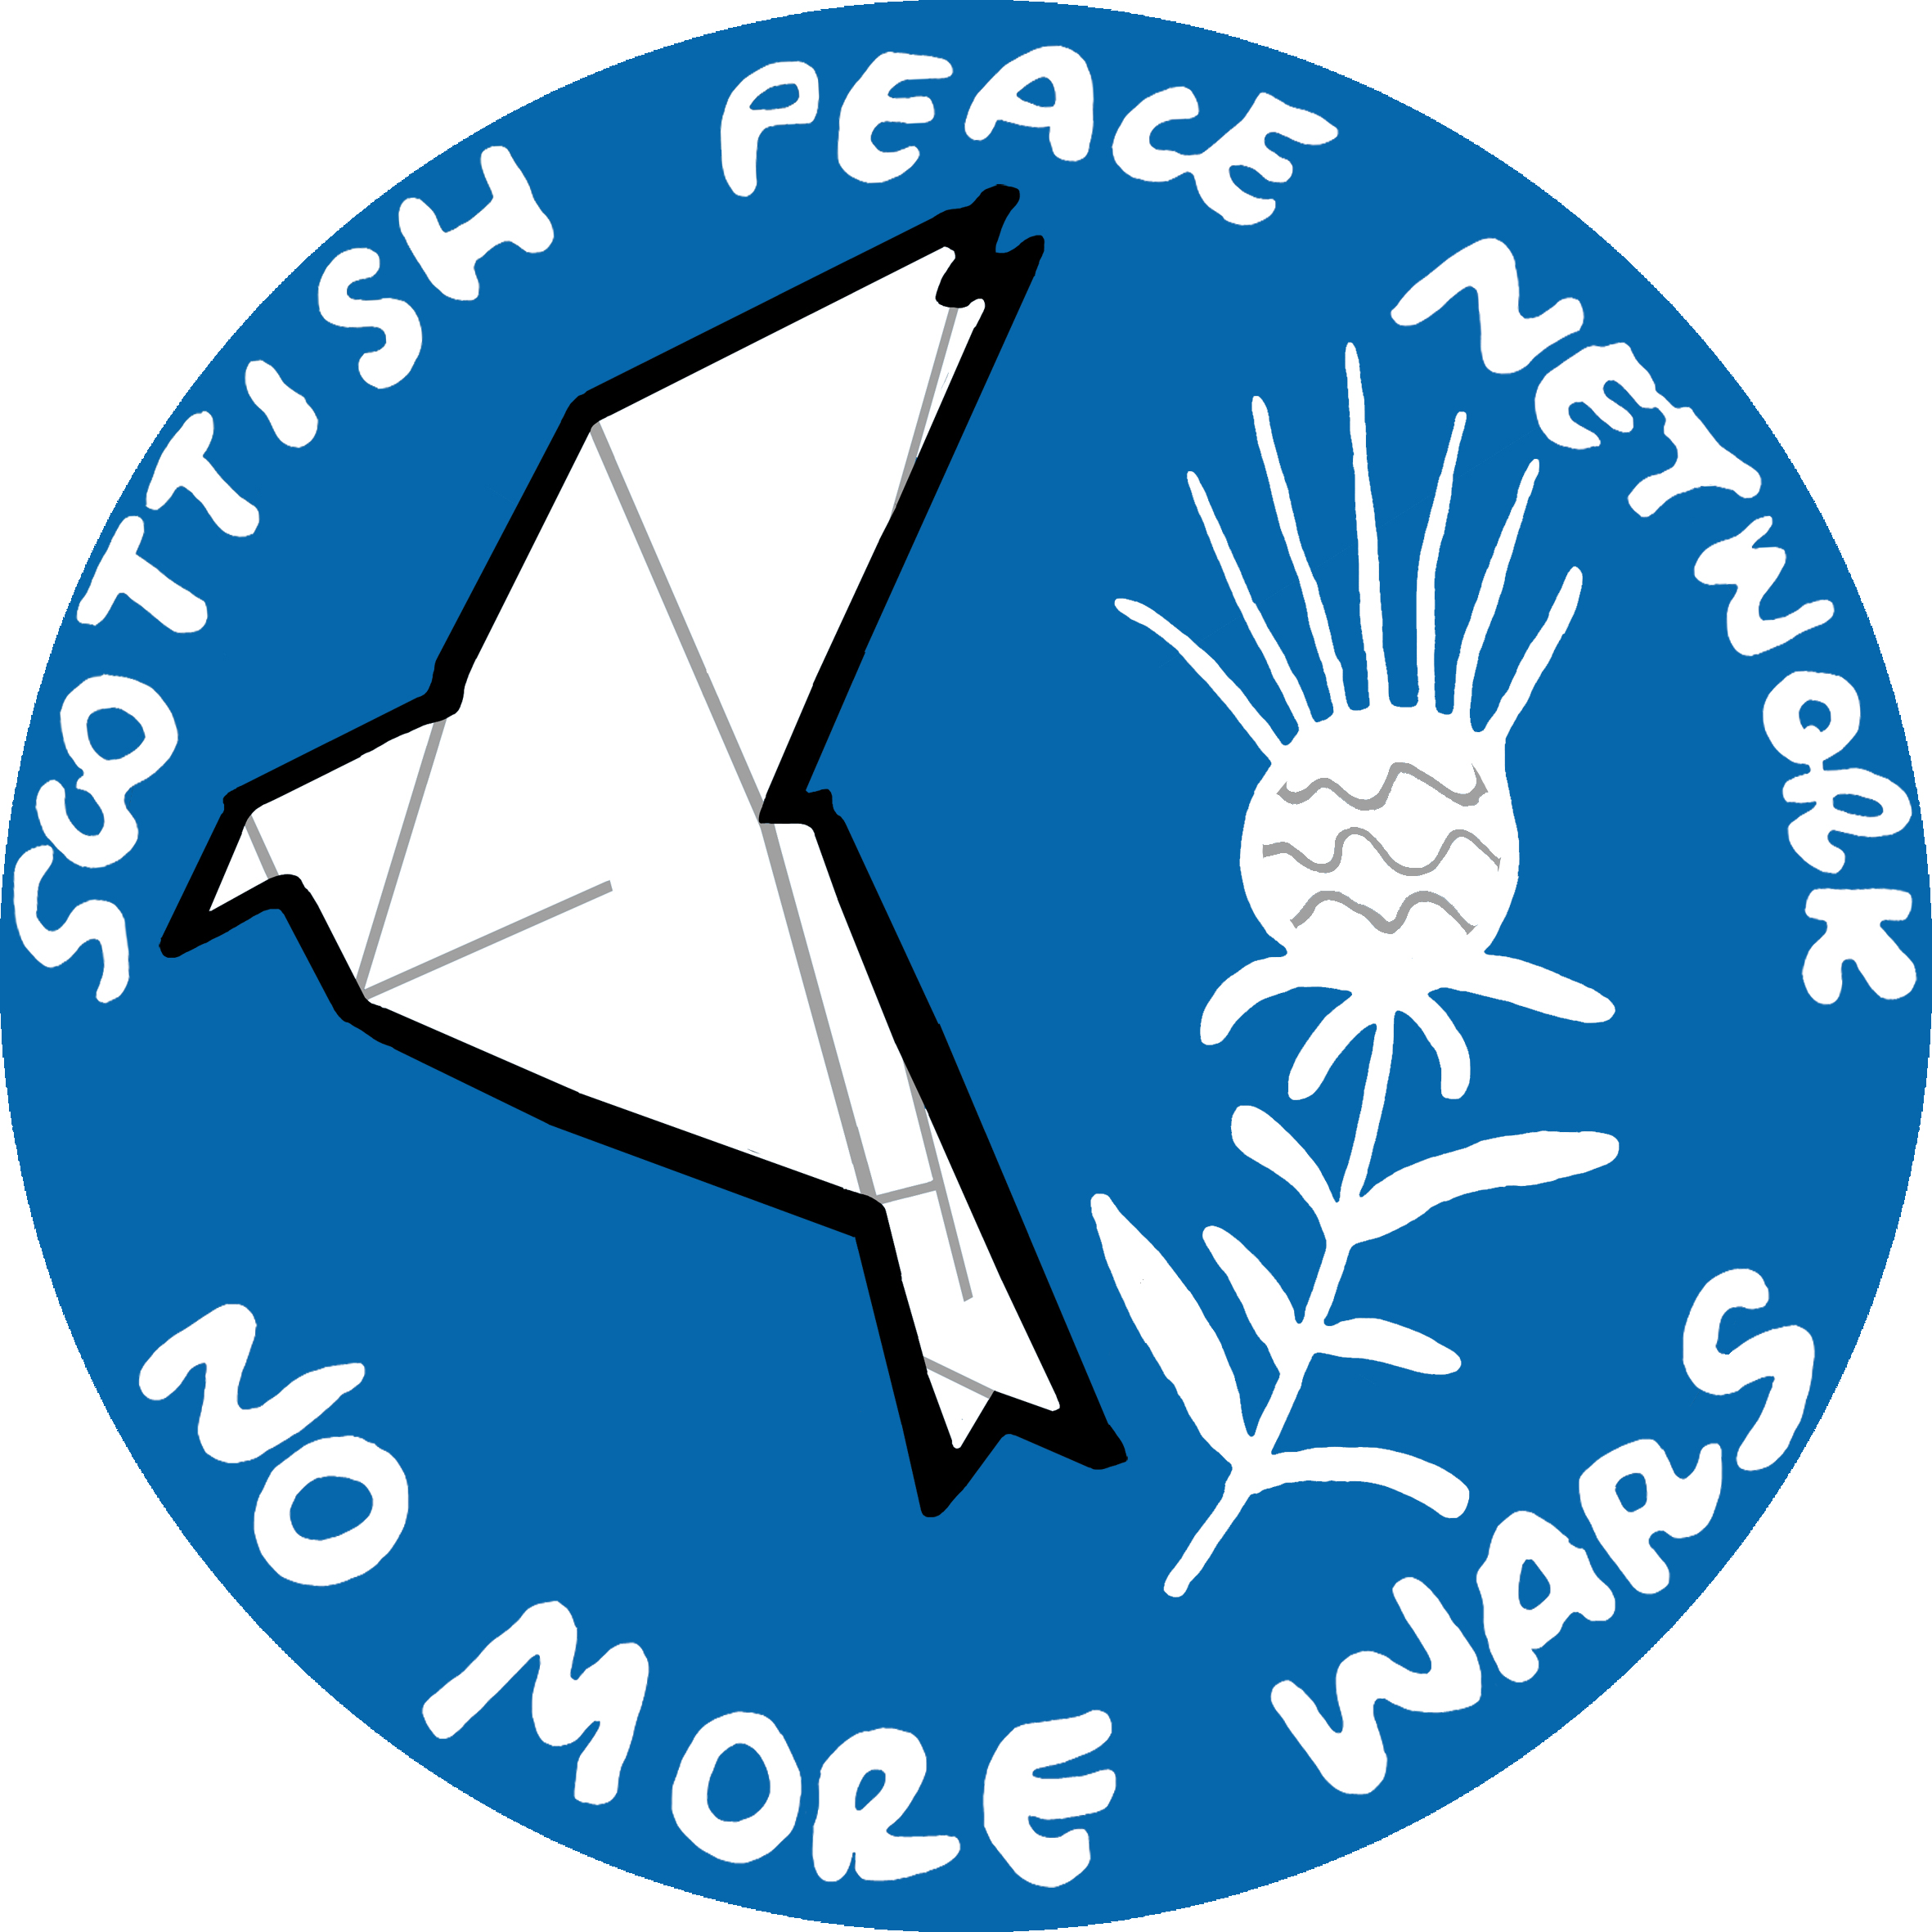 Scottish Peace Network